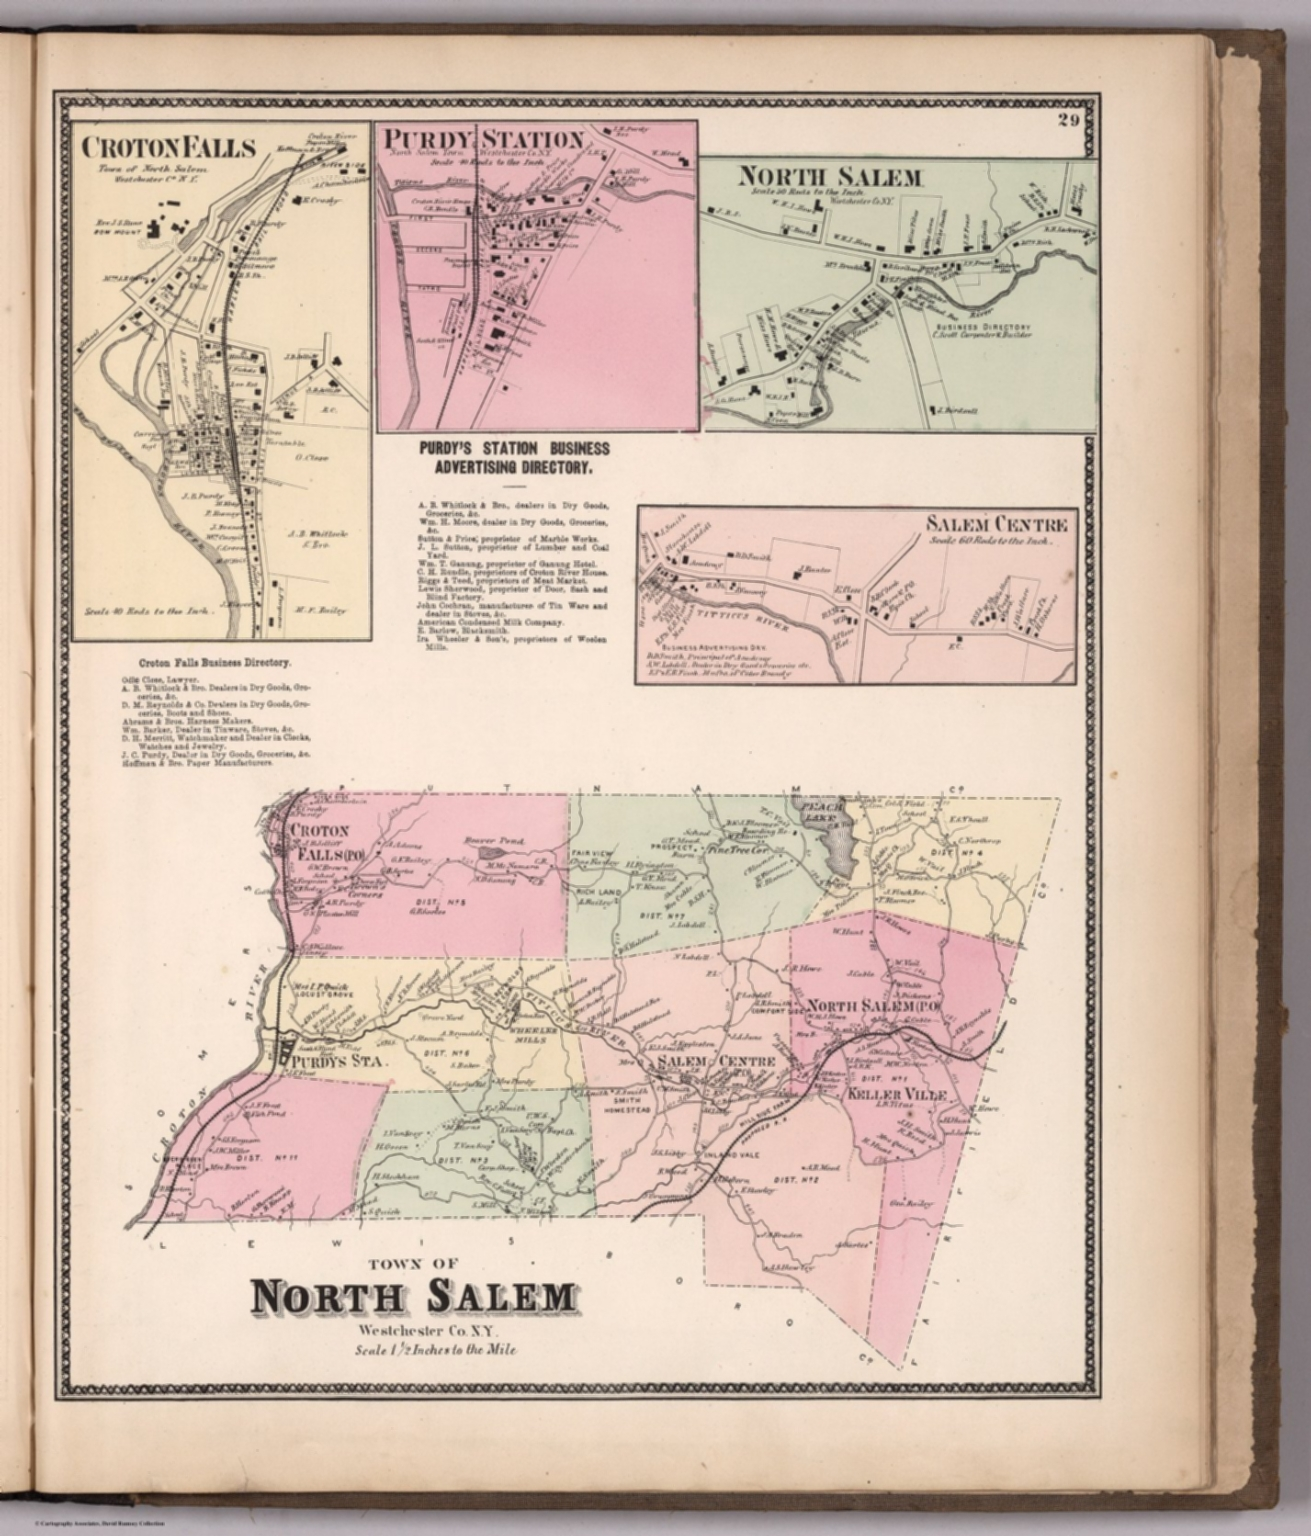 Salem New York Map.Town Of North Salem Westchester County New York Insets Croton